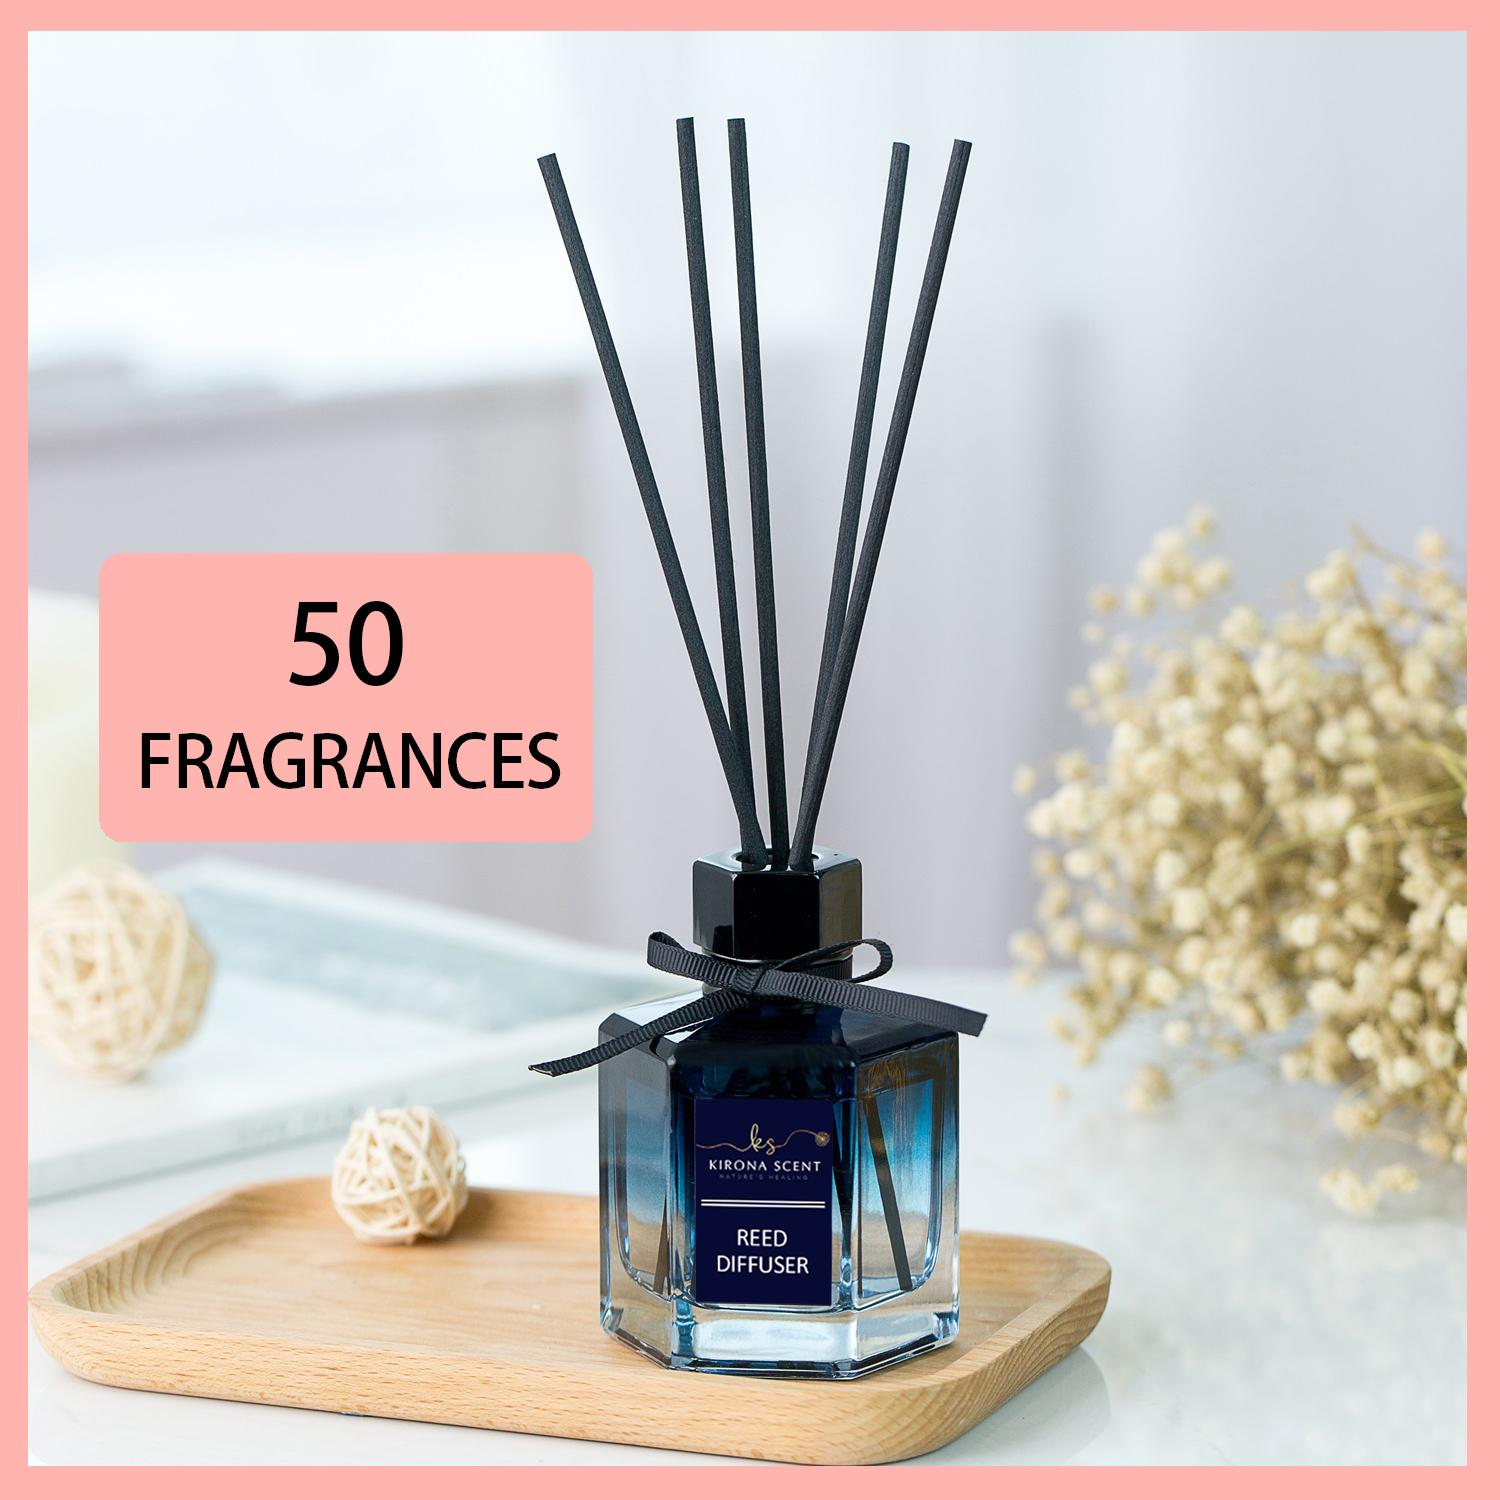 ★NEW FRAGRANCES★HOTEL SCENTS★50 Fragrances / Aroma Reed Diffusers / For Homes & Offices (Type R2)